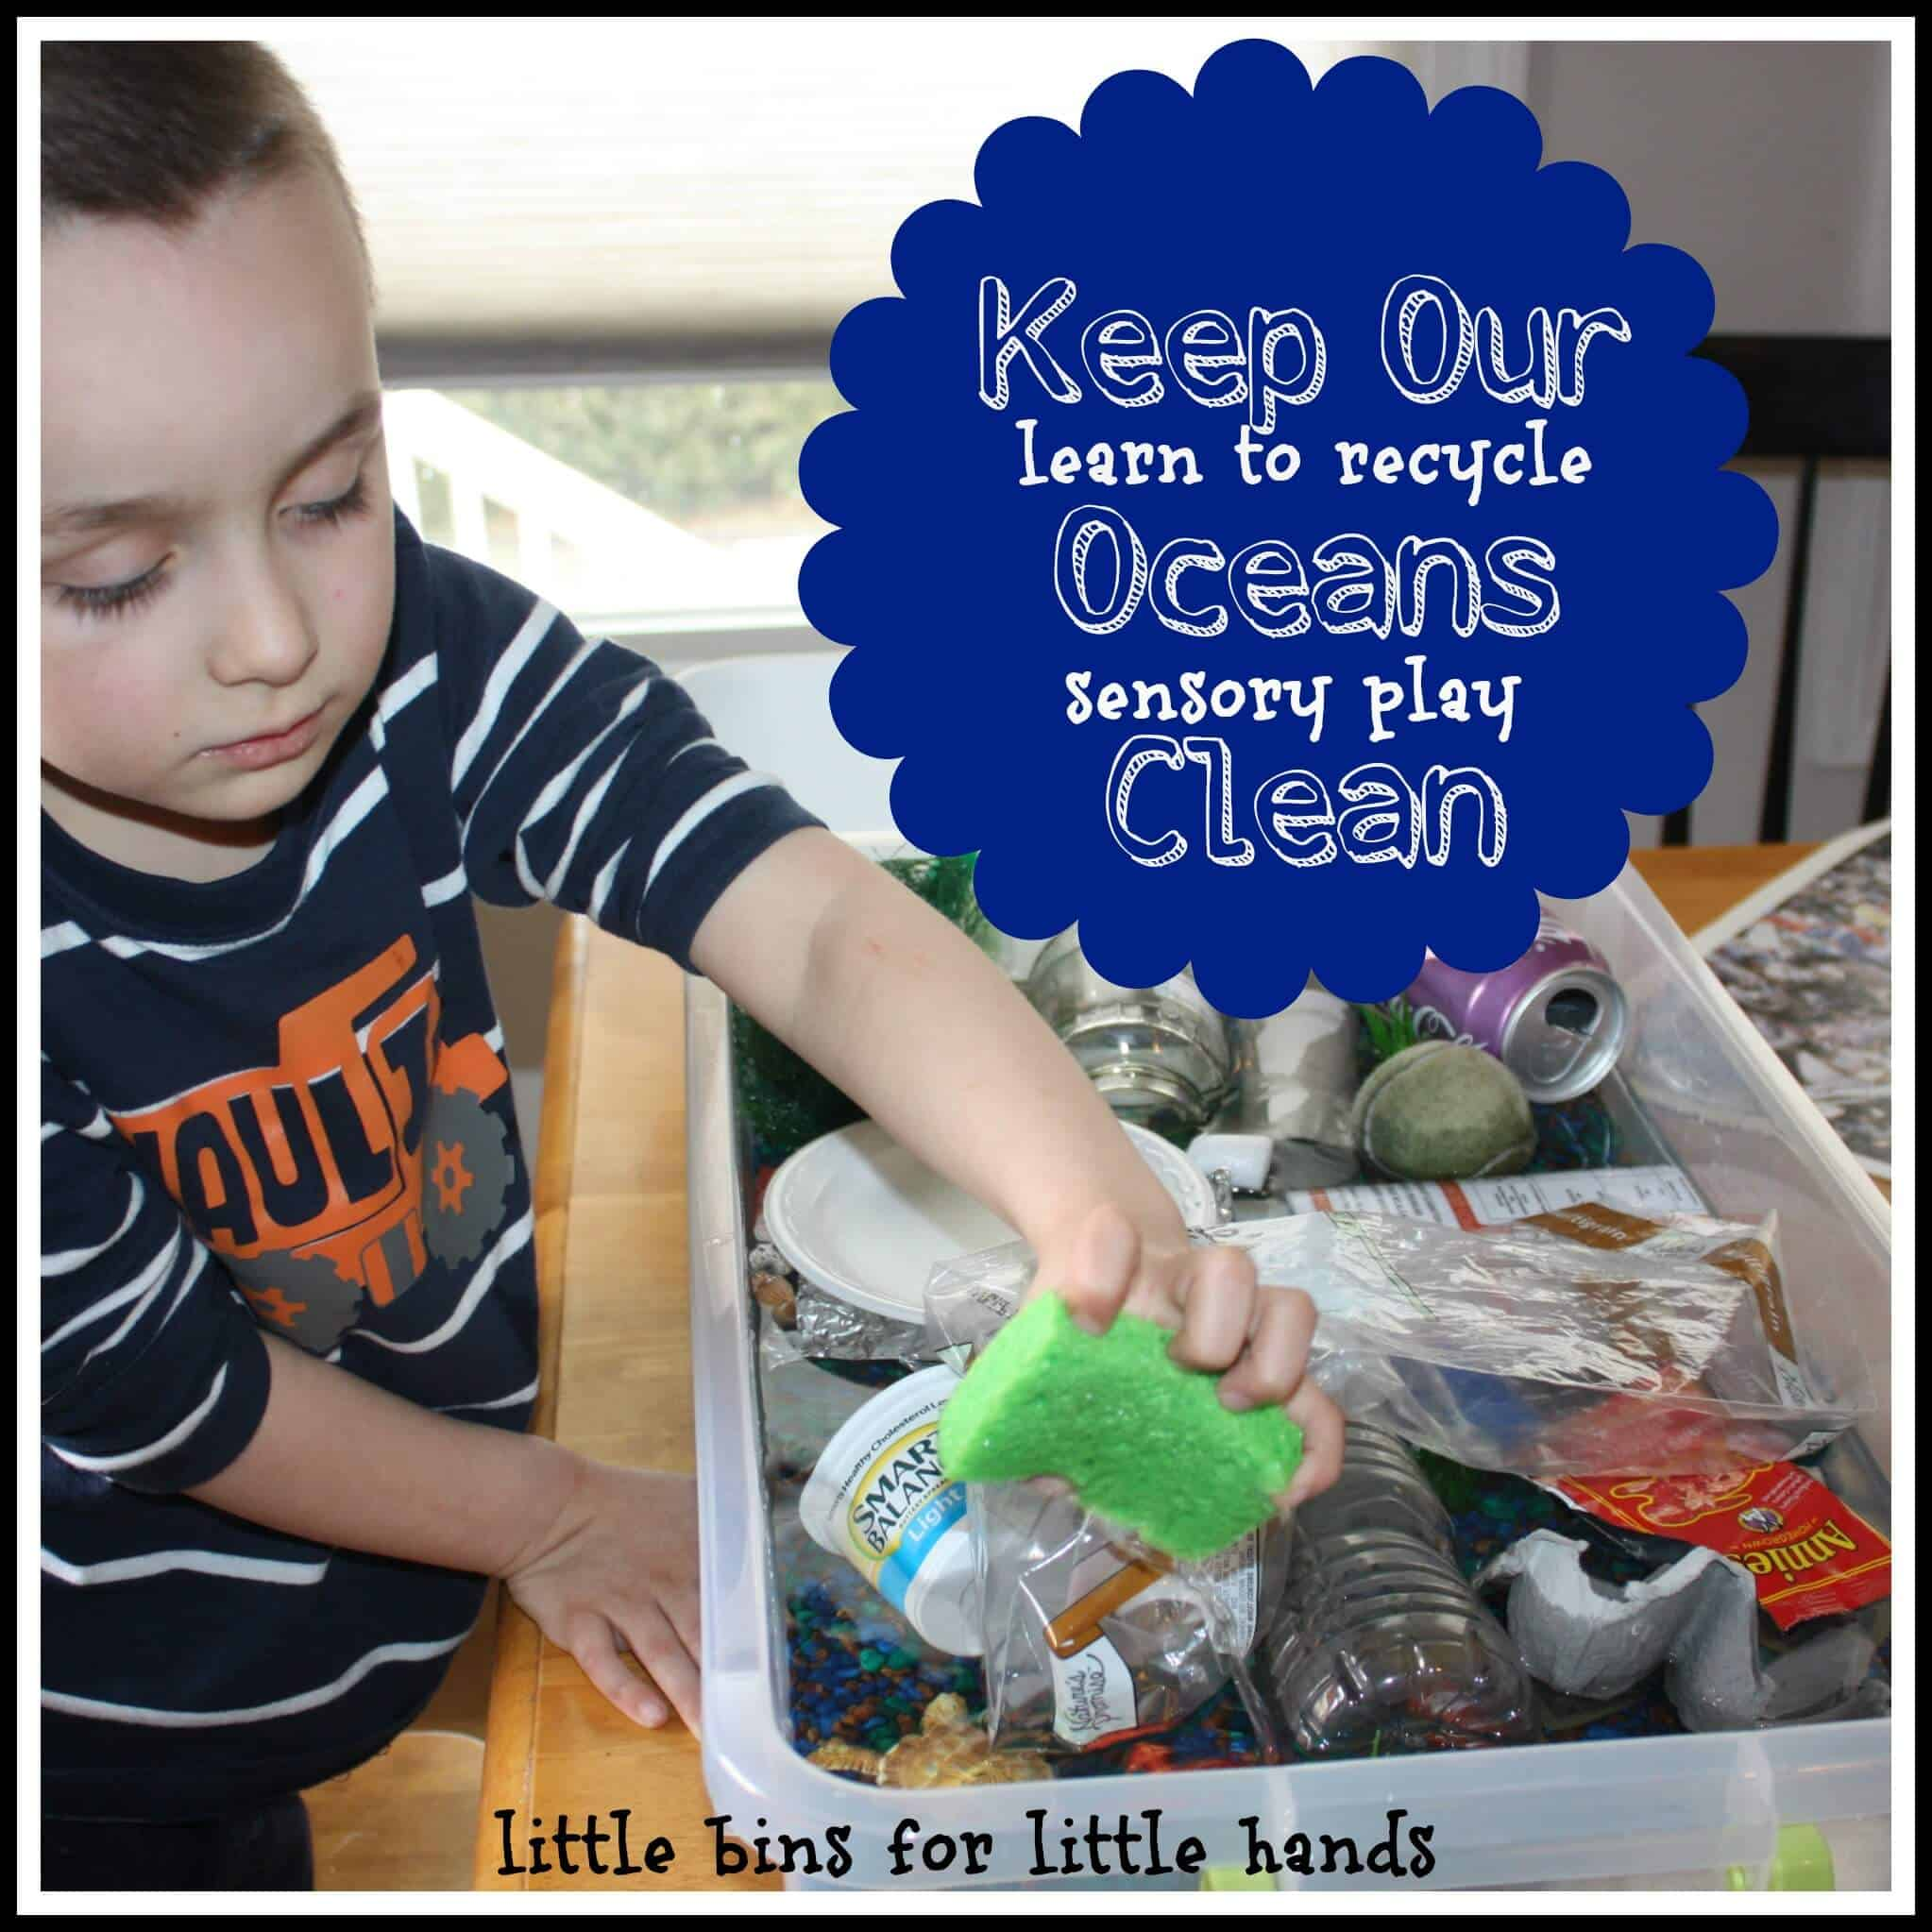 Protecting Our Ocean Sensory Play Amp Recycle Sorting Activity